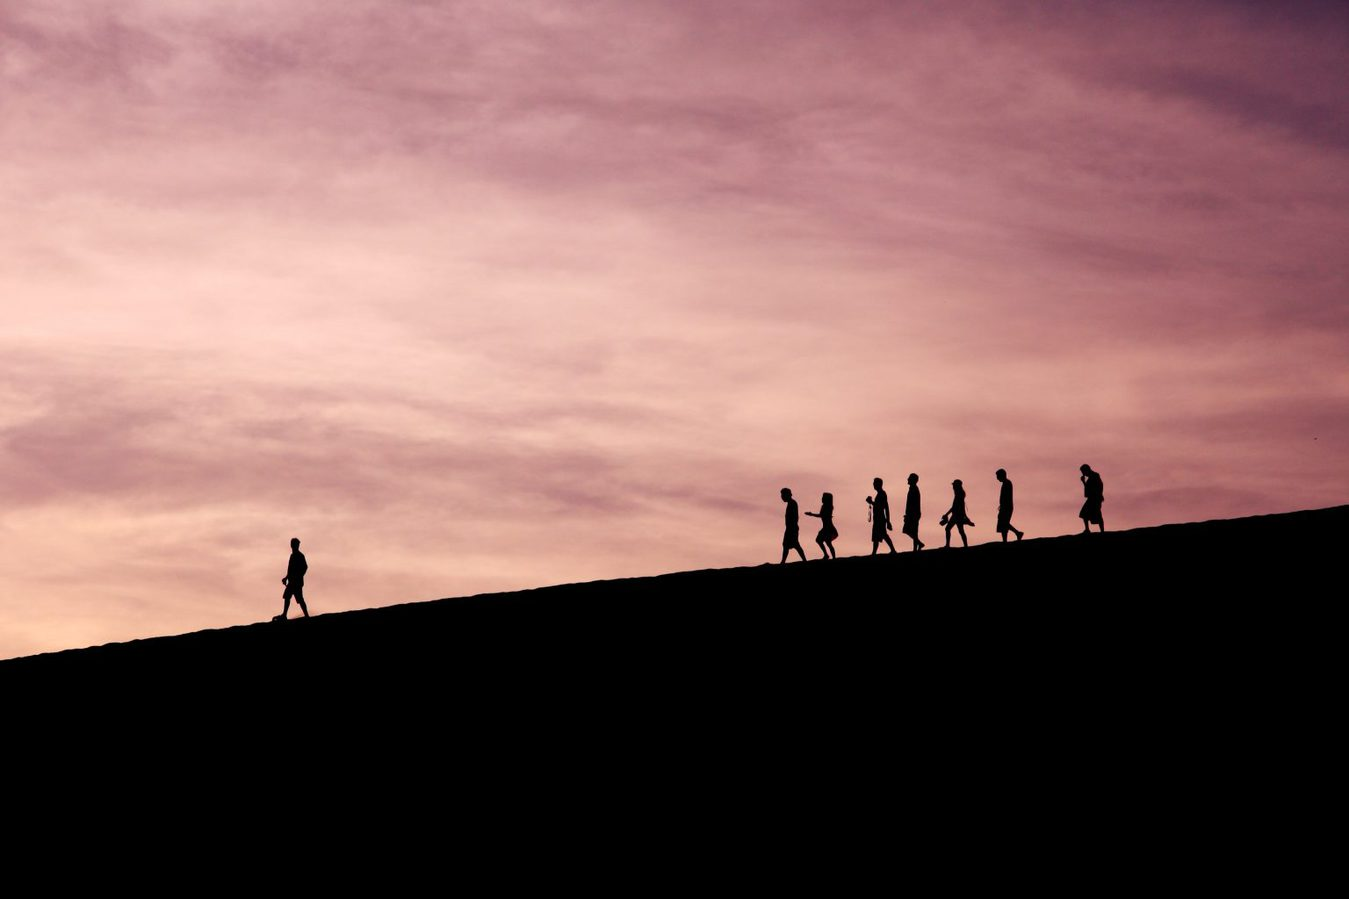 silhouette of person leading group over landscape